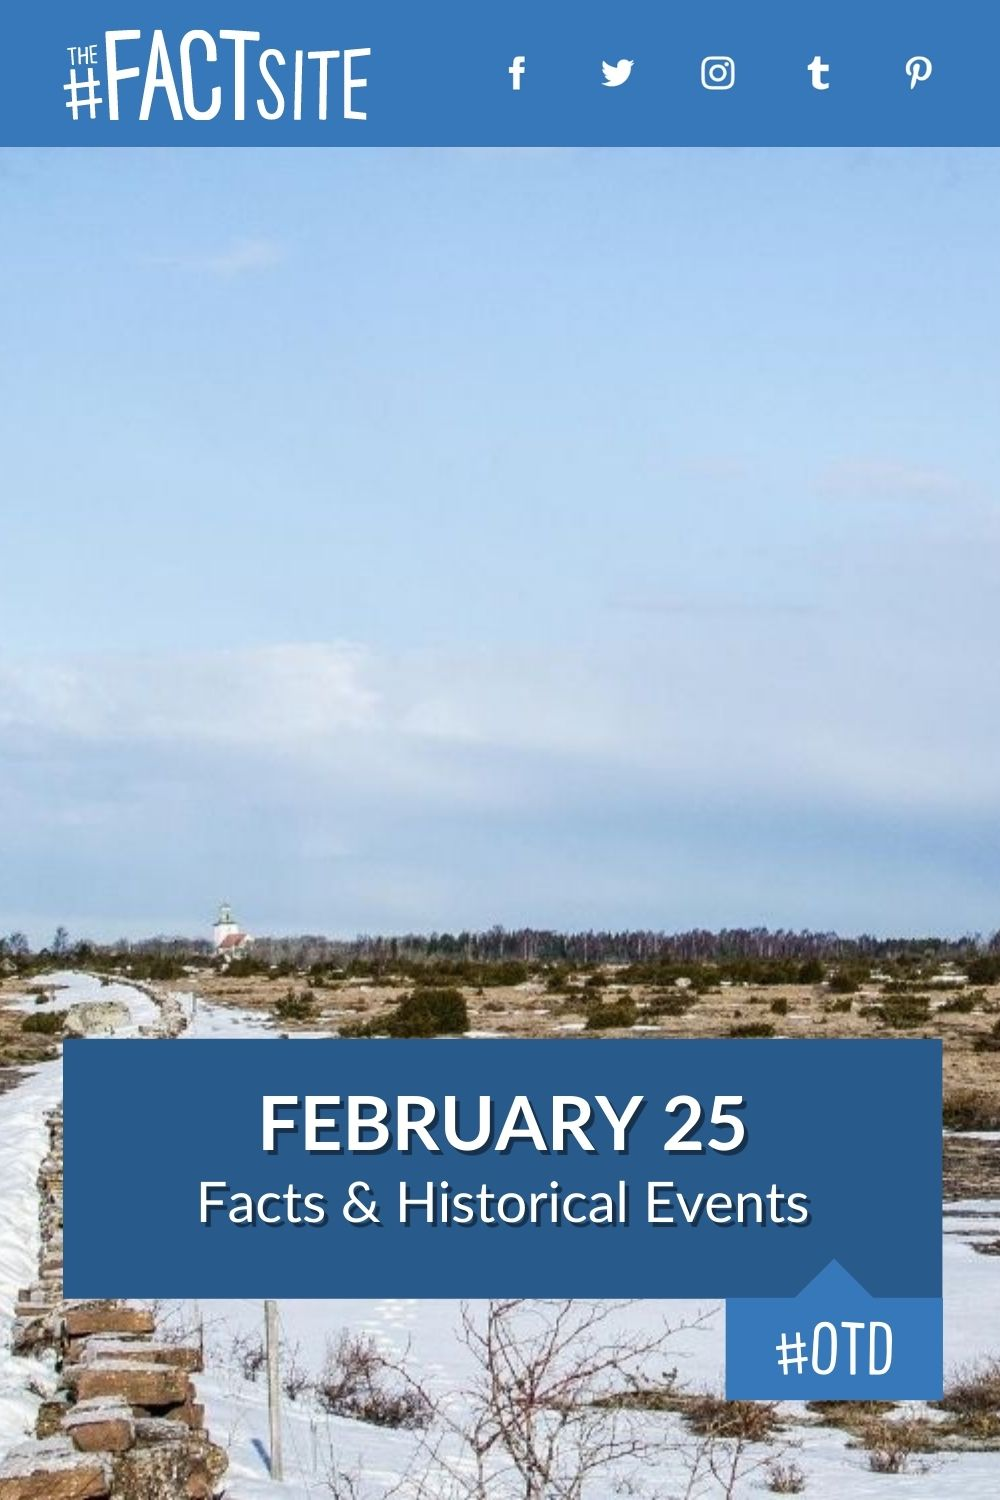 Facts & Historic Events That Happened on February 25